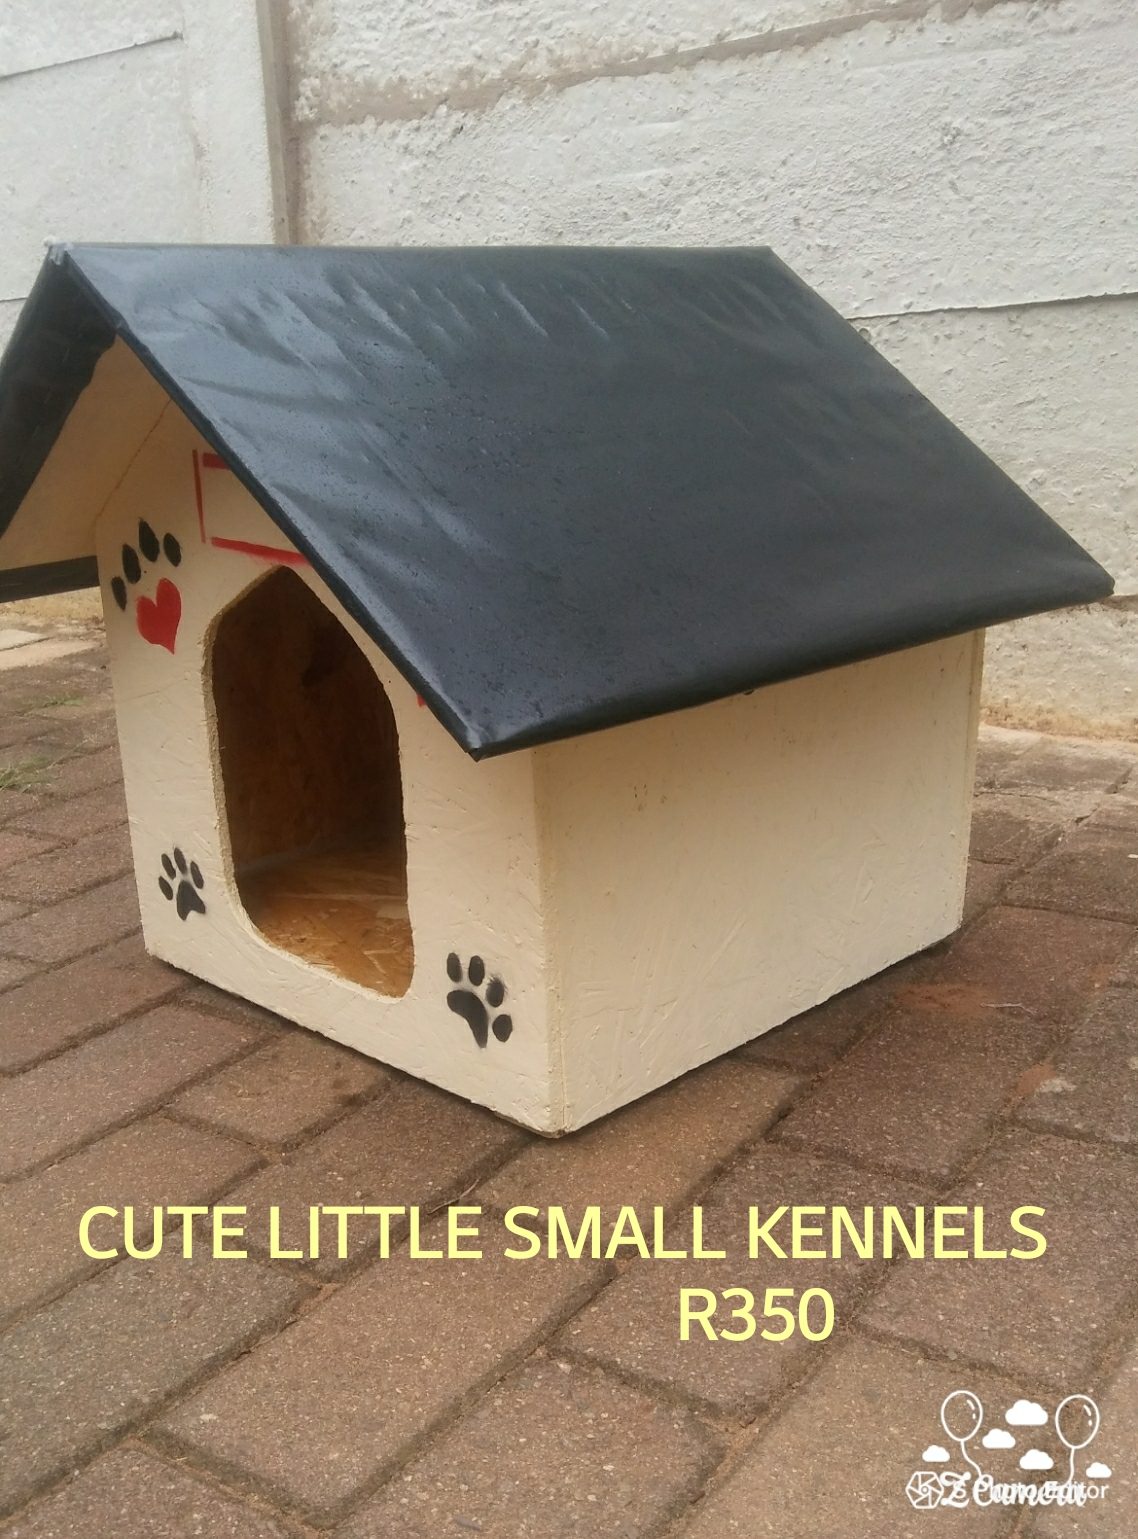 dog kennels. from R350